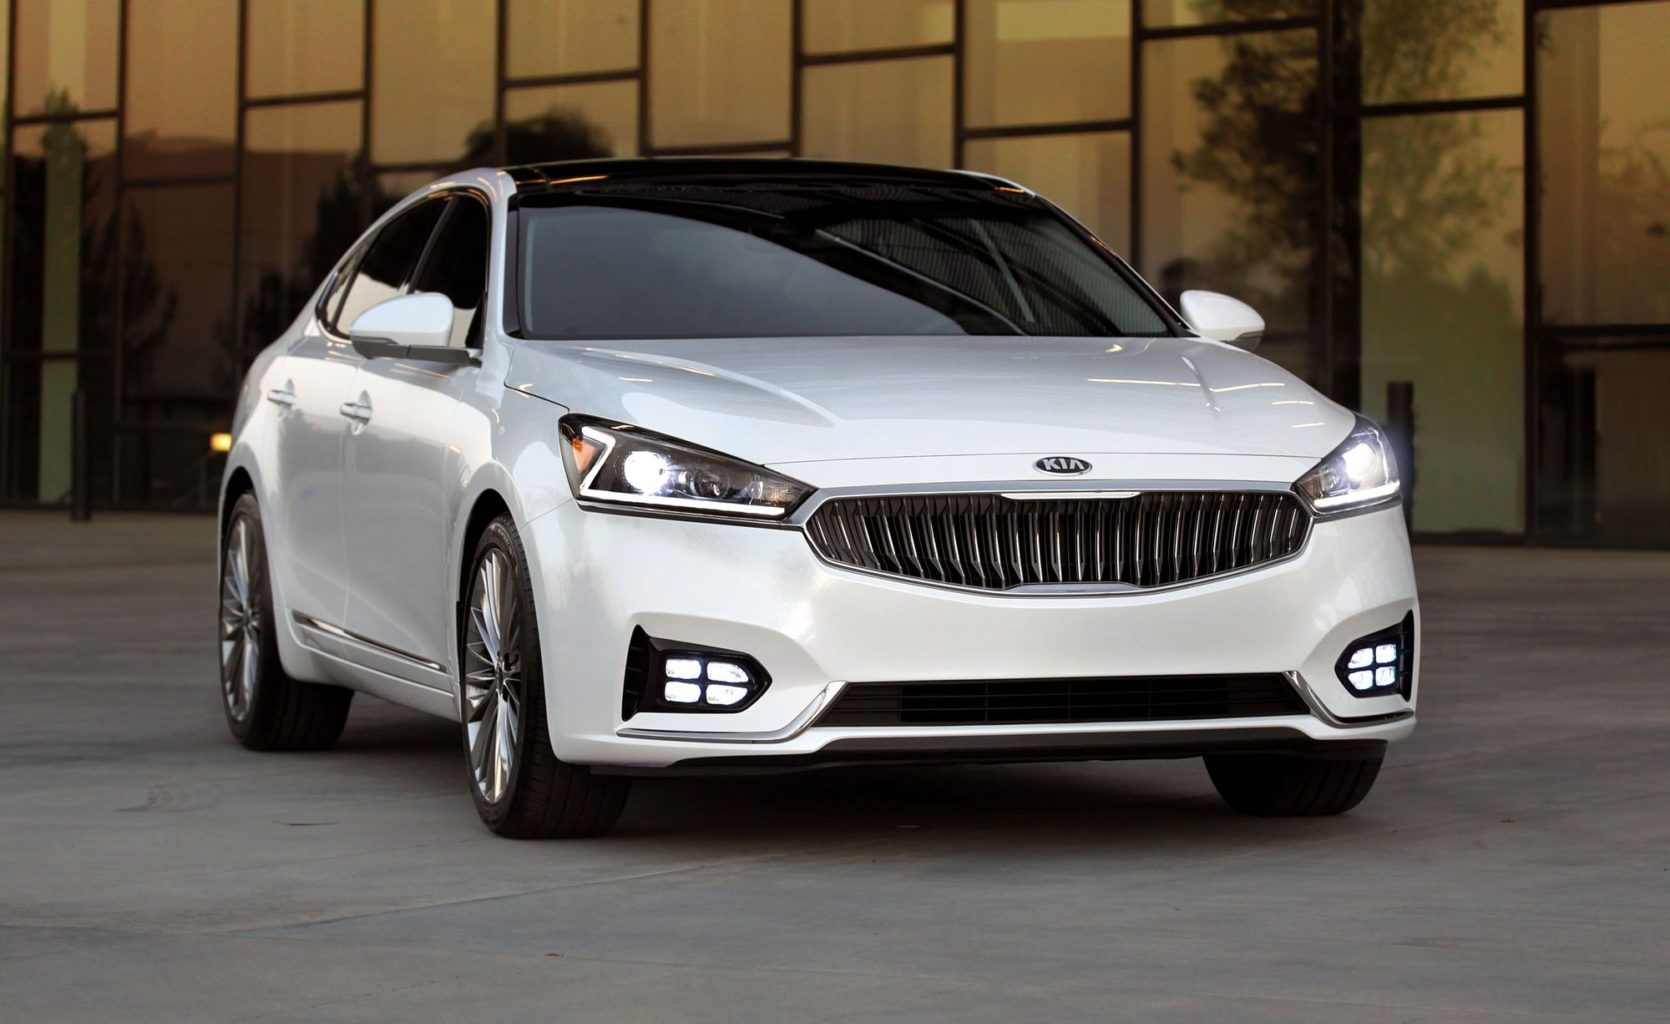 Road Test: 2017 Kia Cadenza | Clean Fleet Report - Kia Cadenza 2022 Safety Rating Crash Test, Gas Mileage